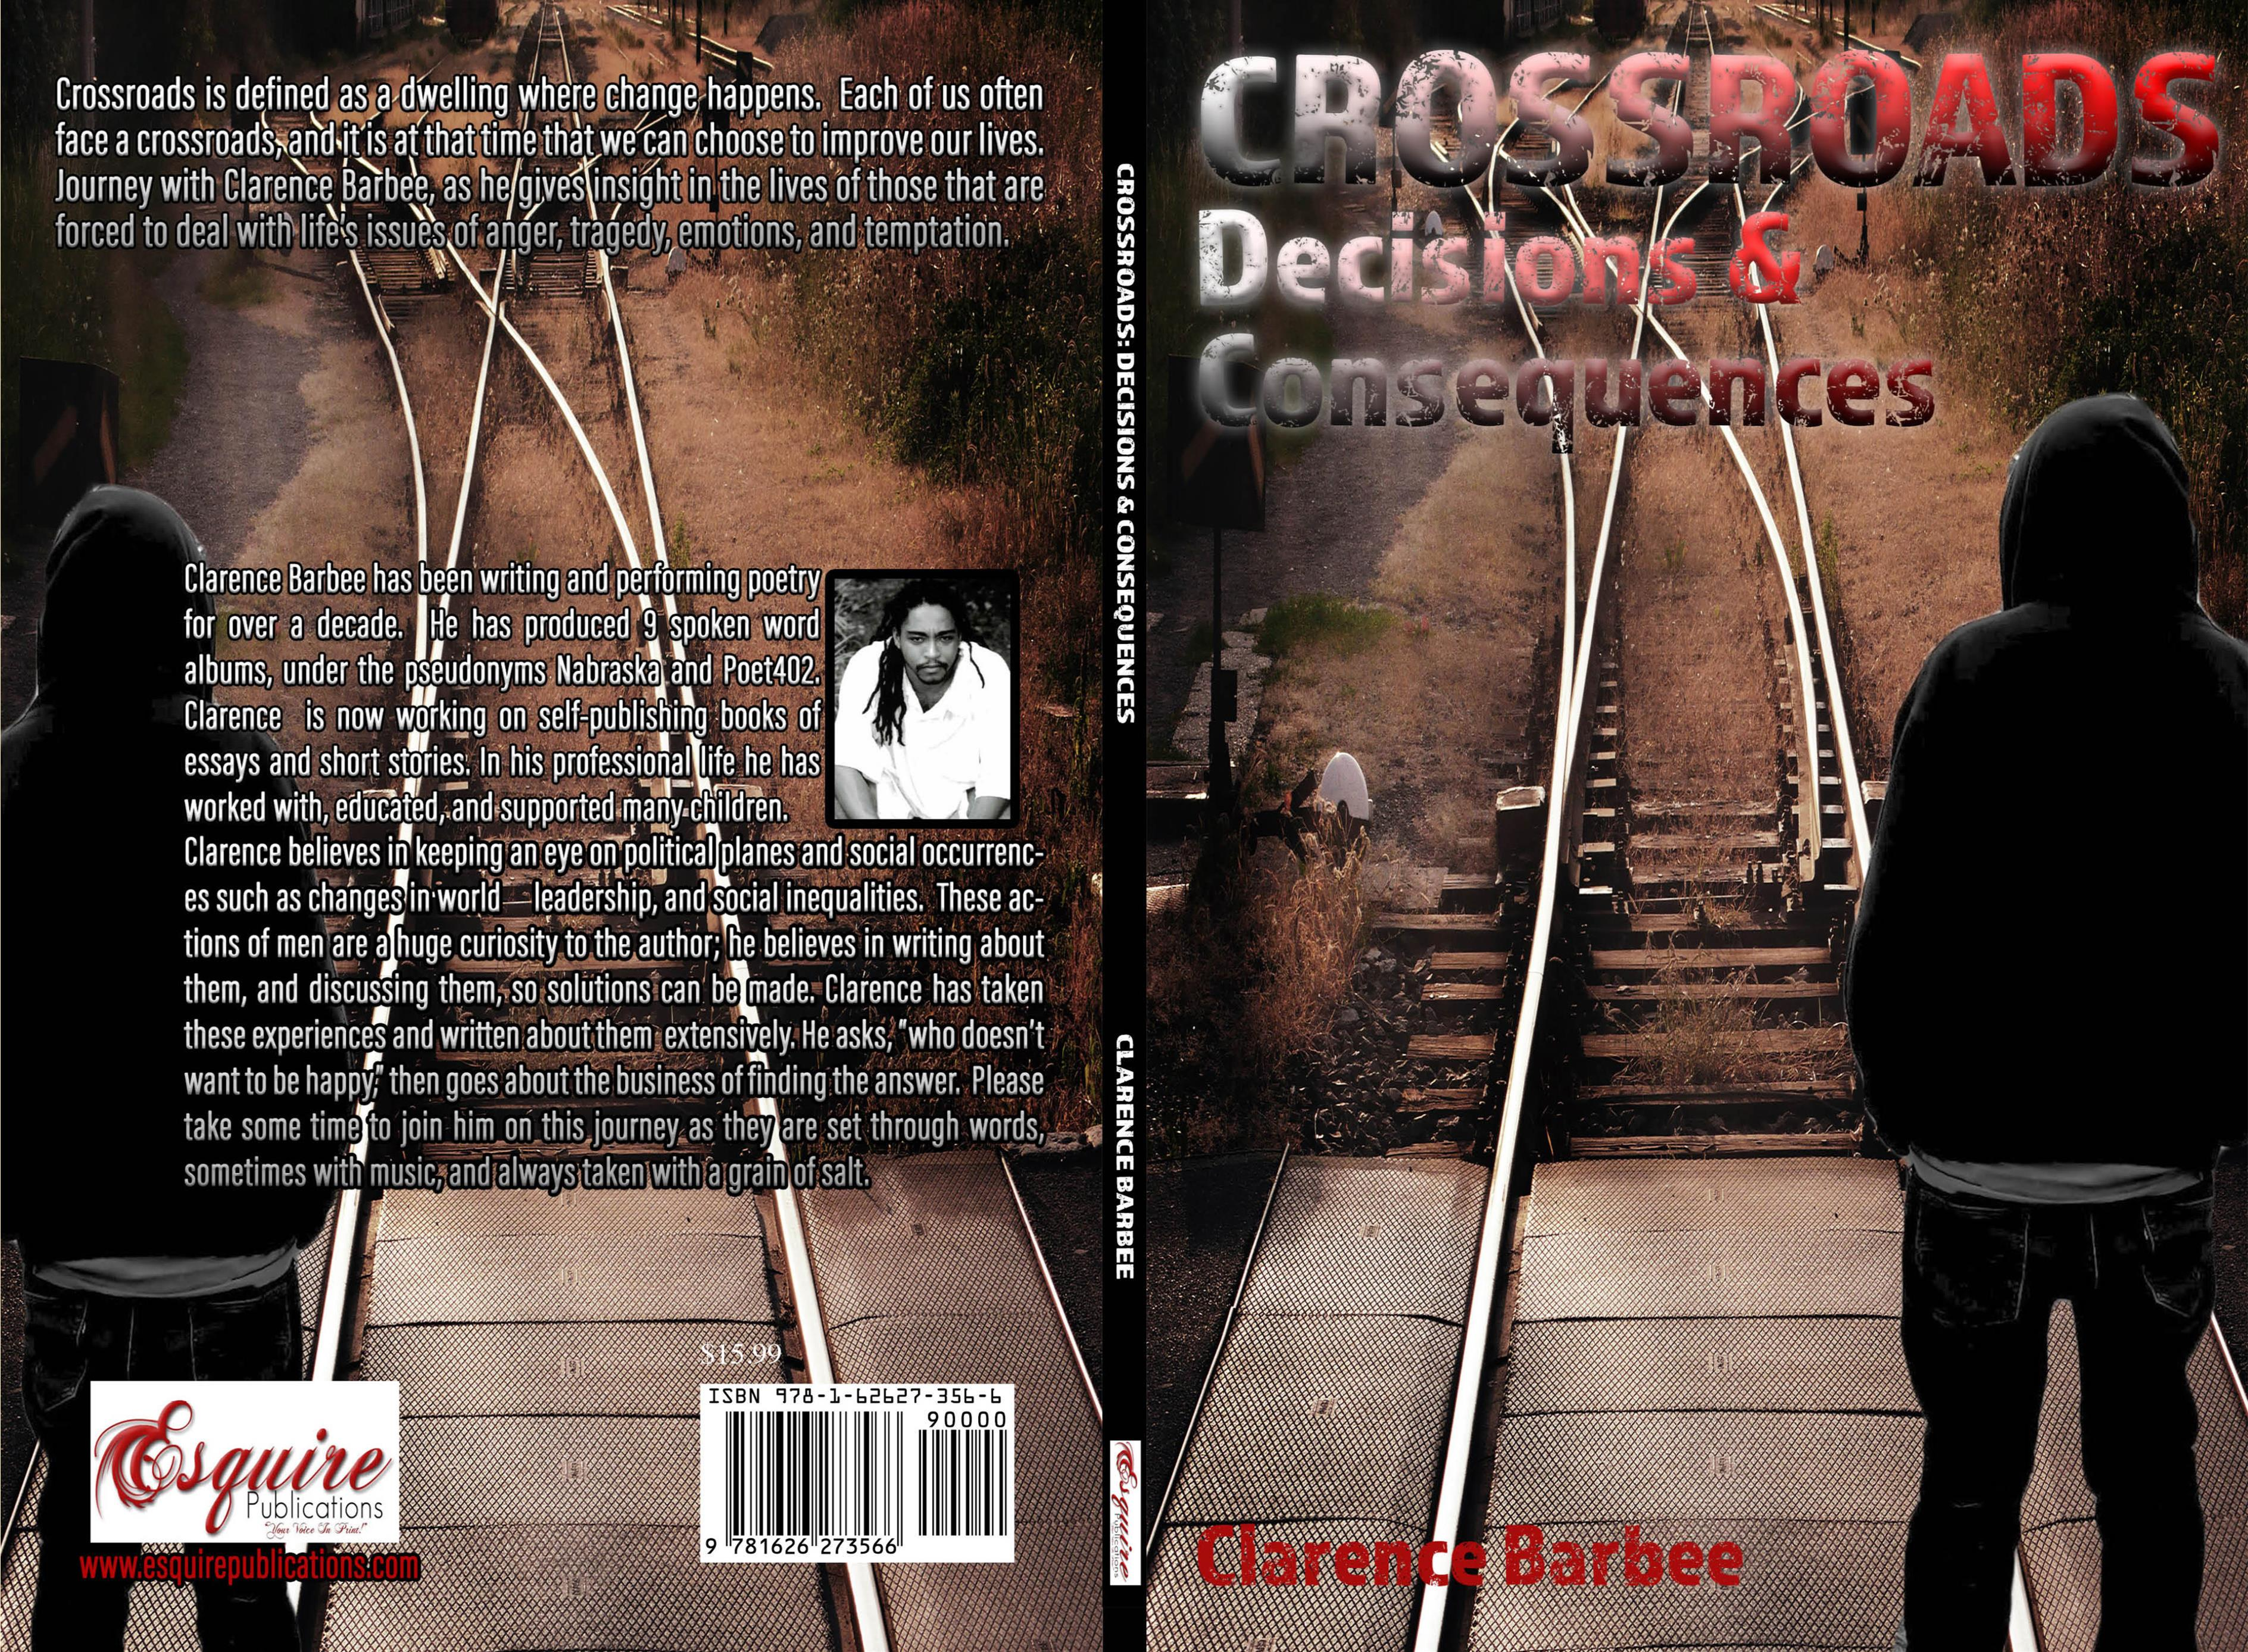 Crossroads: Decisions and Consequences cover image